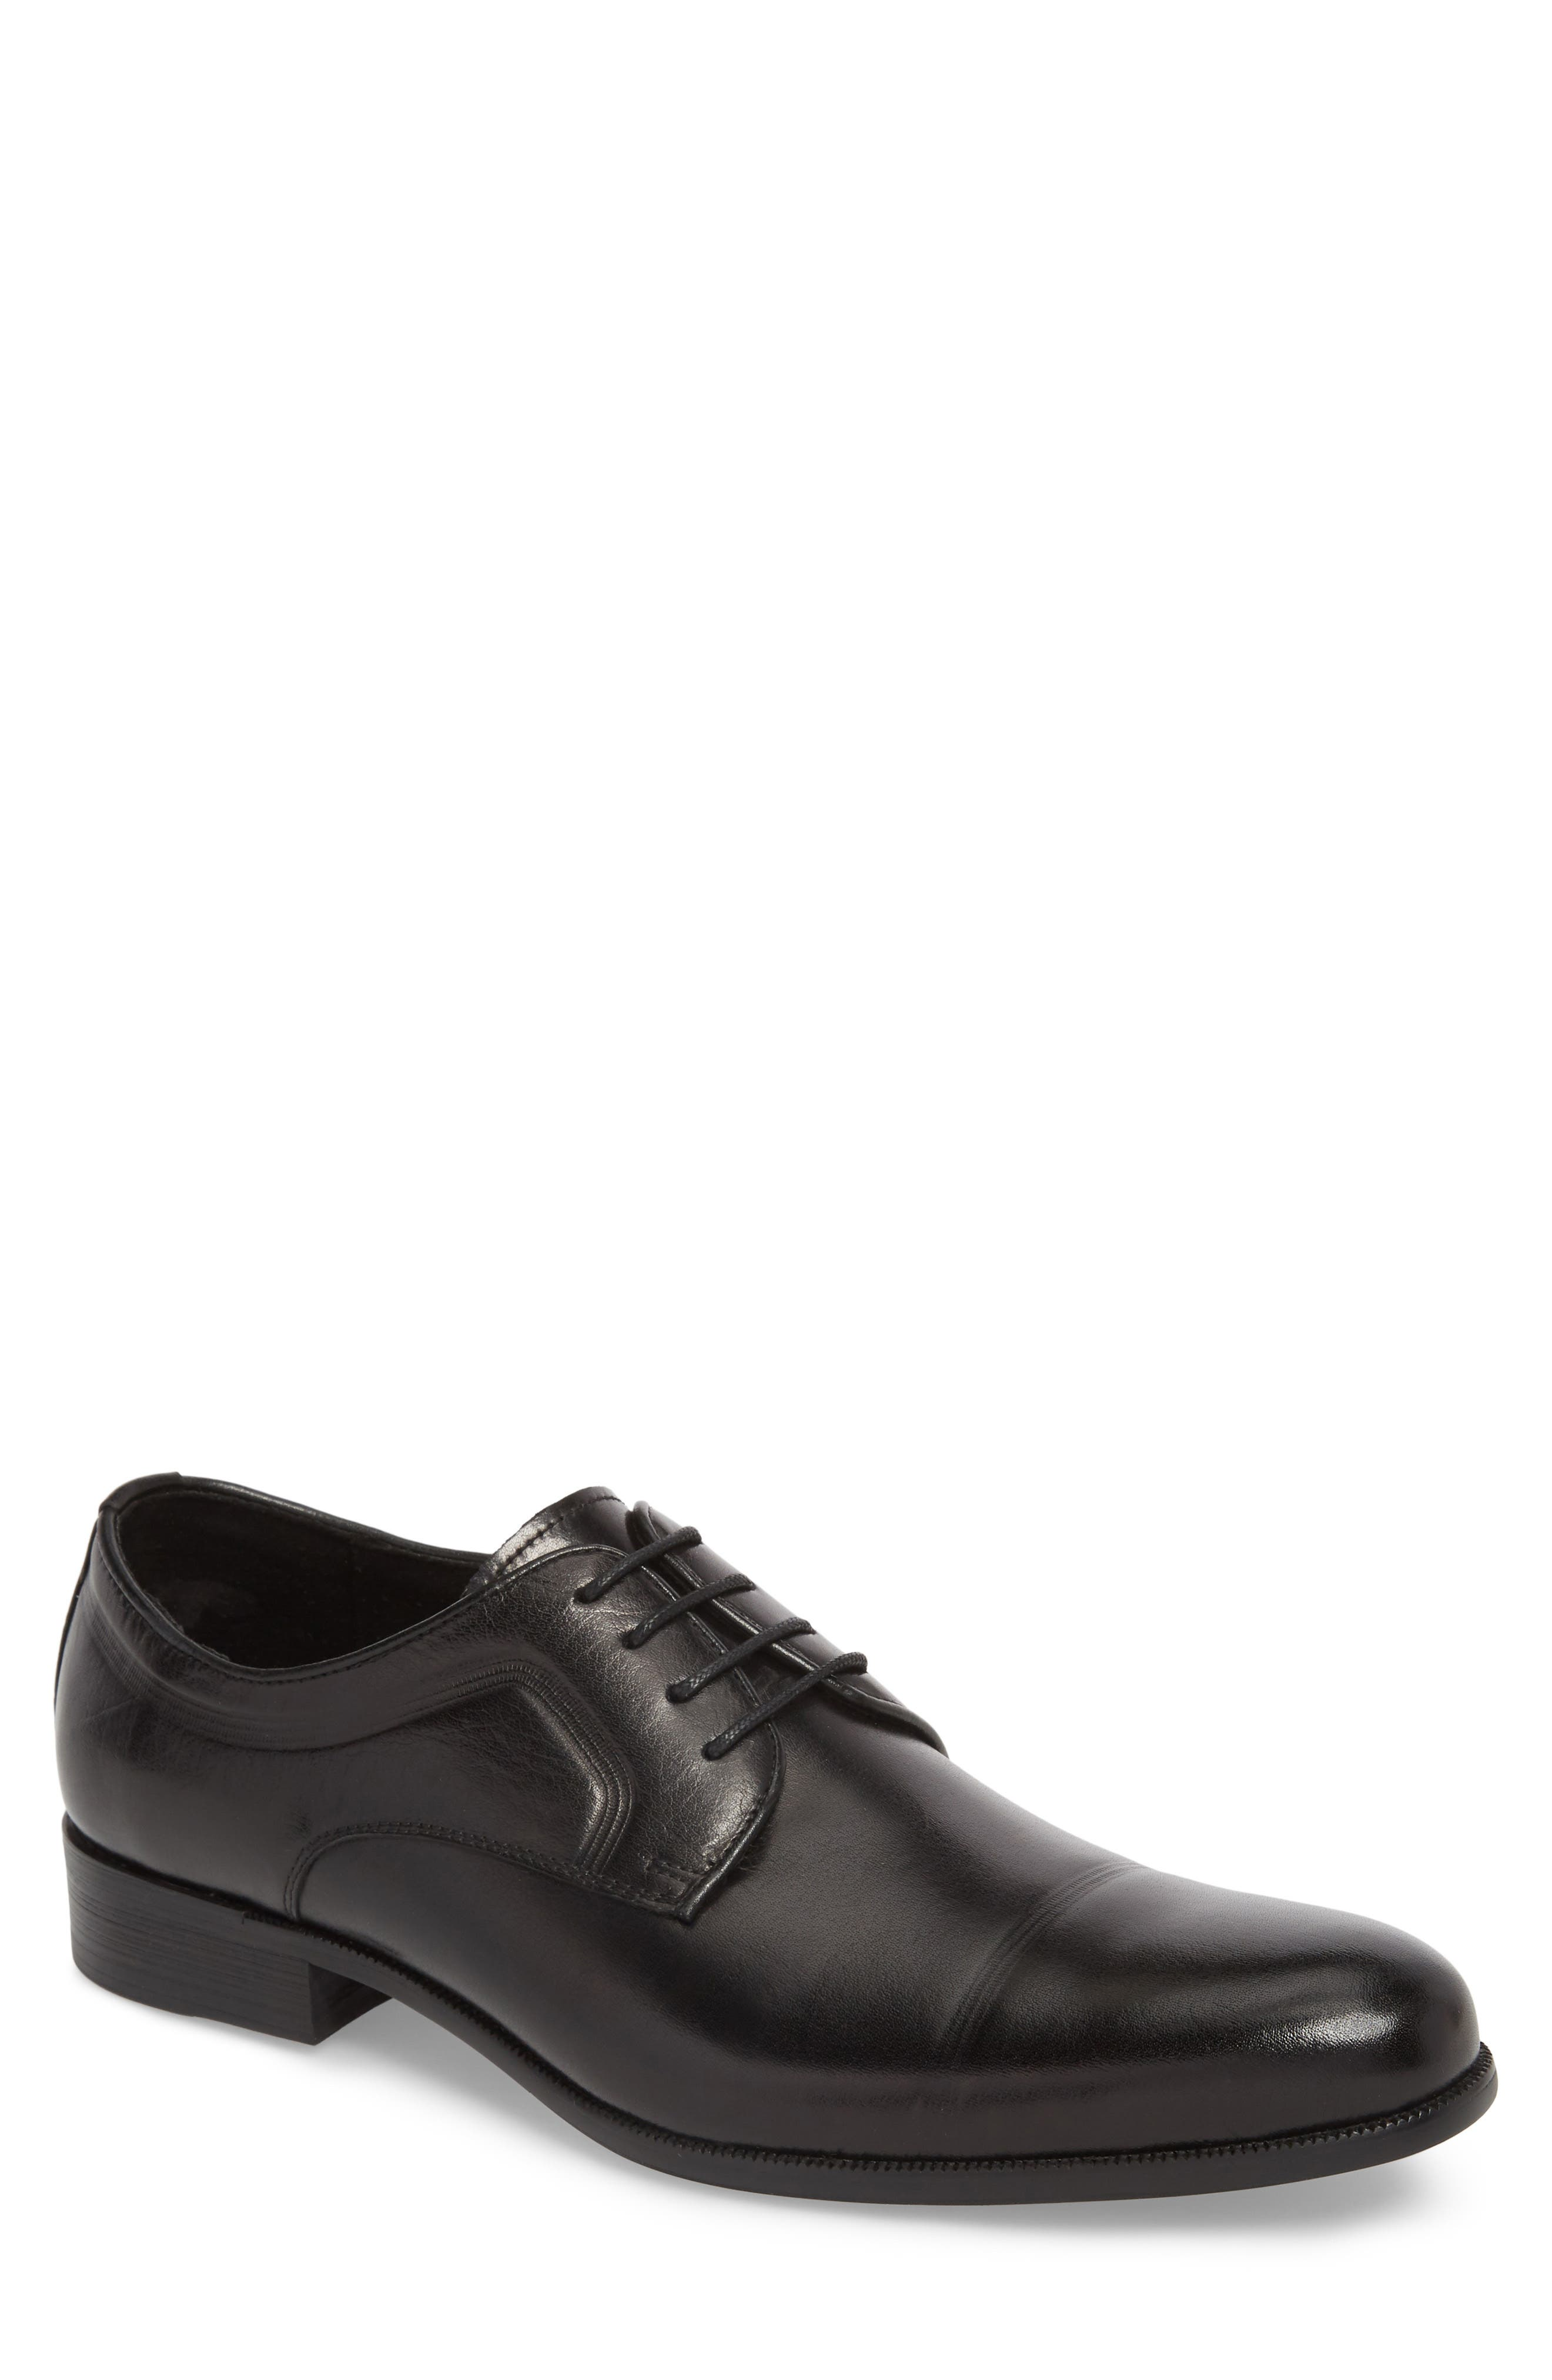 Kenneth Cole New York Chief Cap Toe Derby (Men)